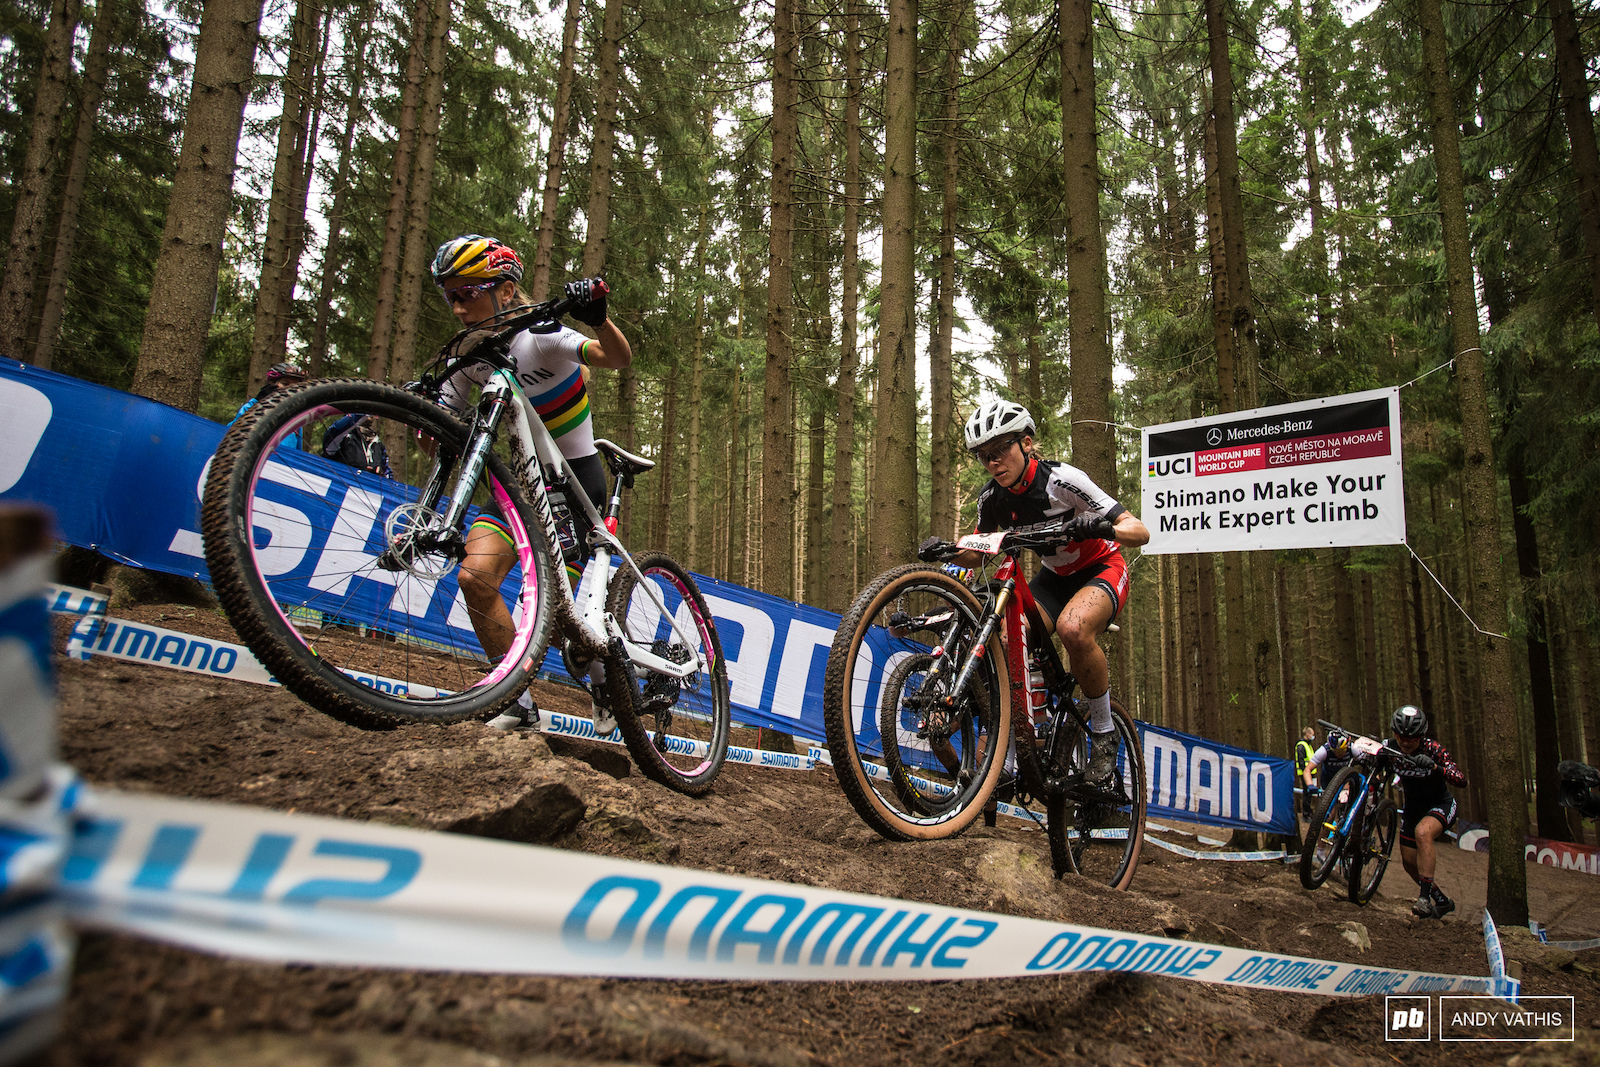 By the time the elite races had begun the rocks in Expert Climb had a decent coating of slippery mud. Pauline Ferrand Prevot was one of many who ran the section instead. Loana Lecomte wasn t having any of that.